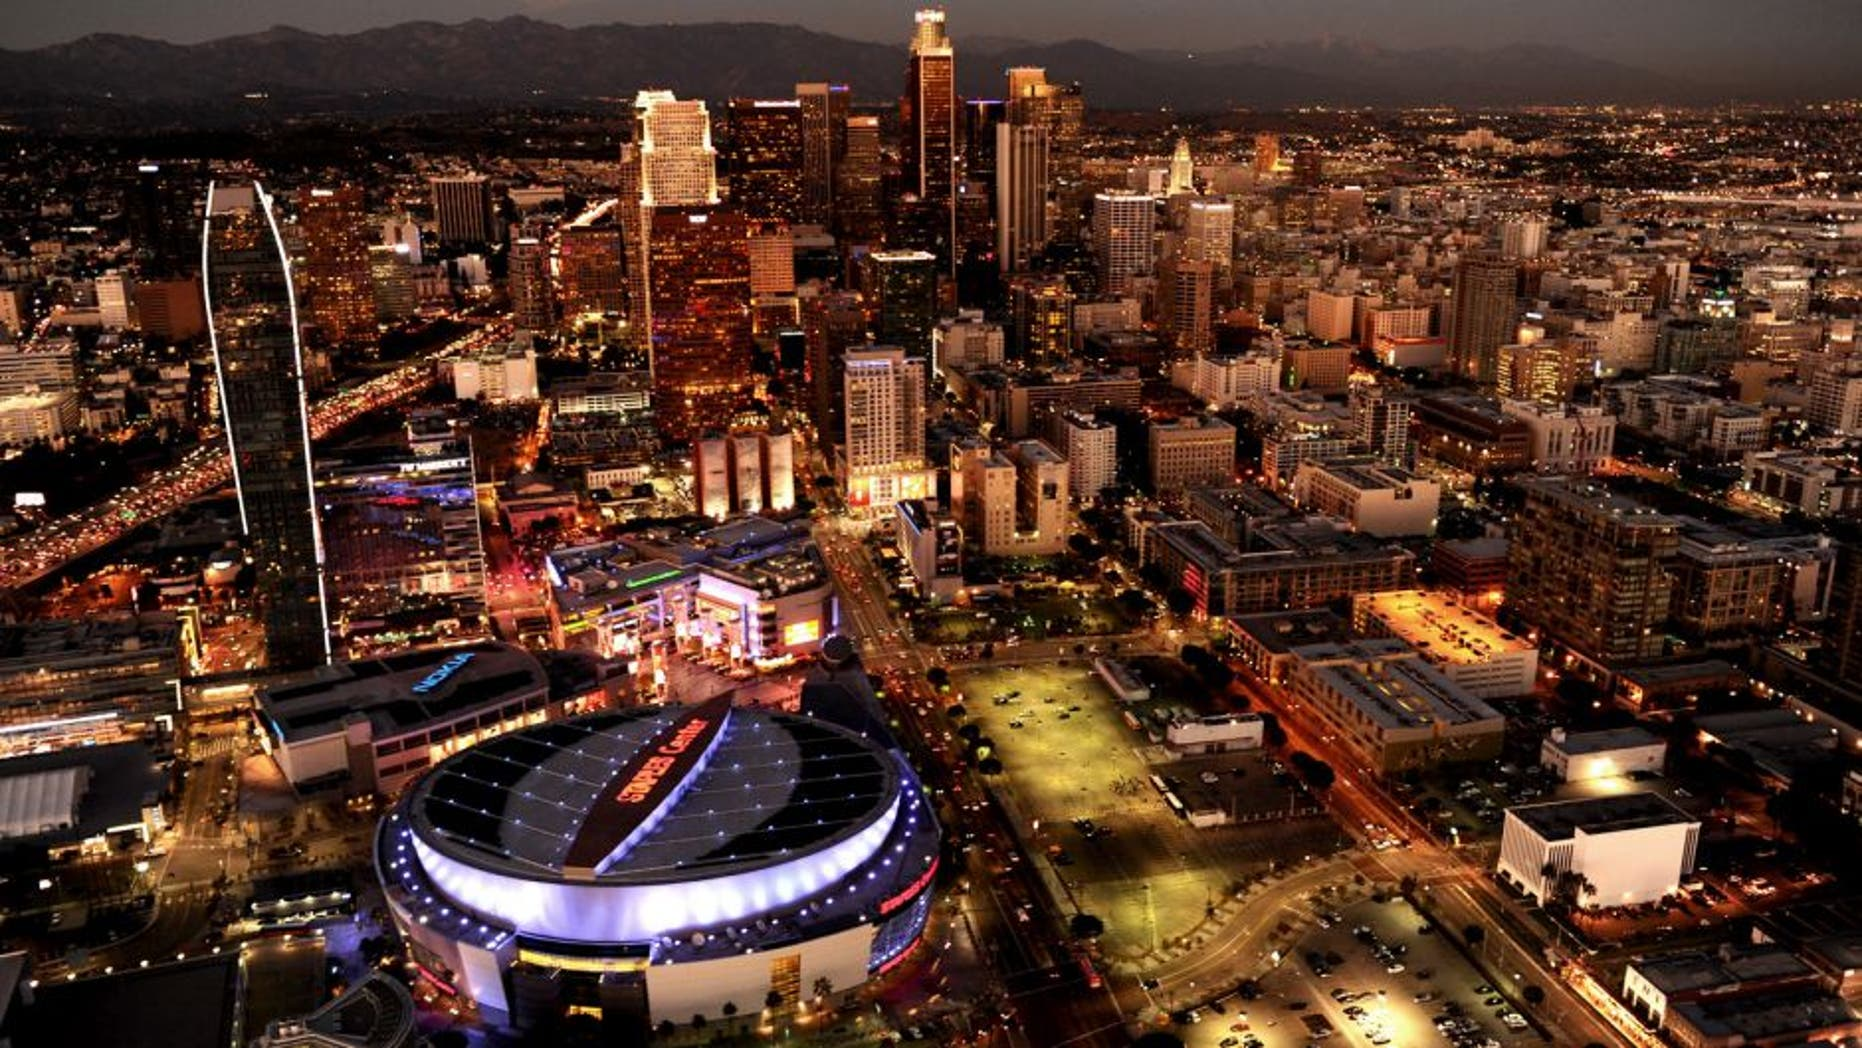 GRIFFITH PARK, CA NOVEMBER 4, 2014 -- Aerial view of the downtown Los Angeles skyline with Staples Center and LA Live foreground left. taken on November 4, 2014. (Photo by Wally Skalij/Los Angeles Times via Getty Images)